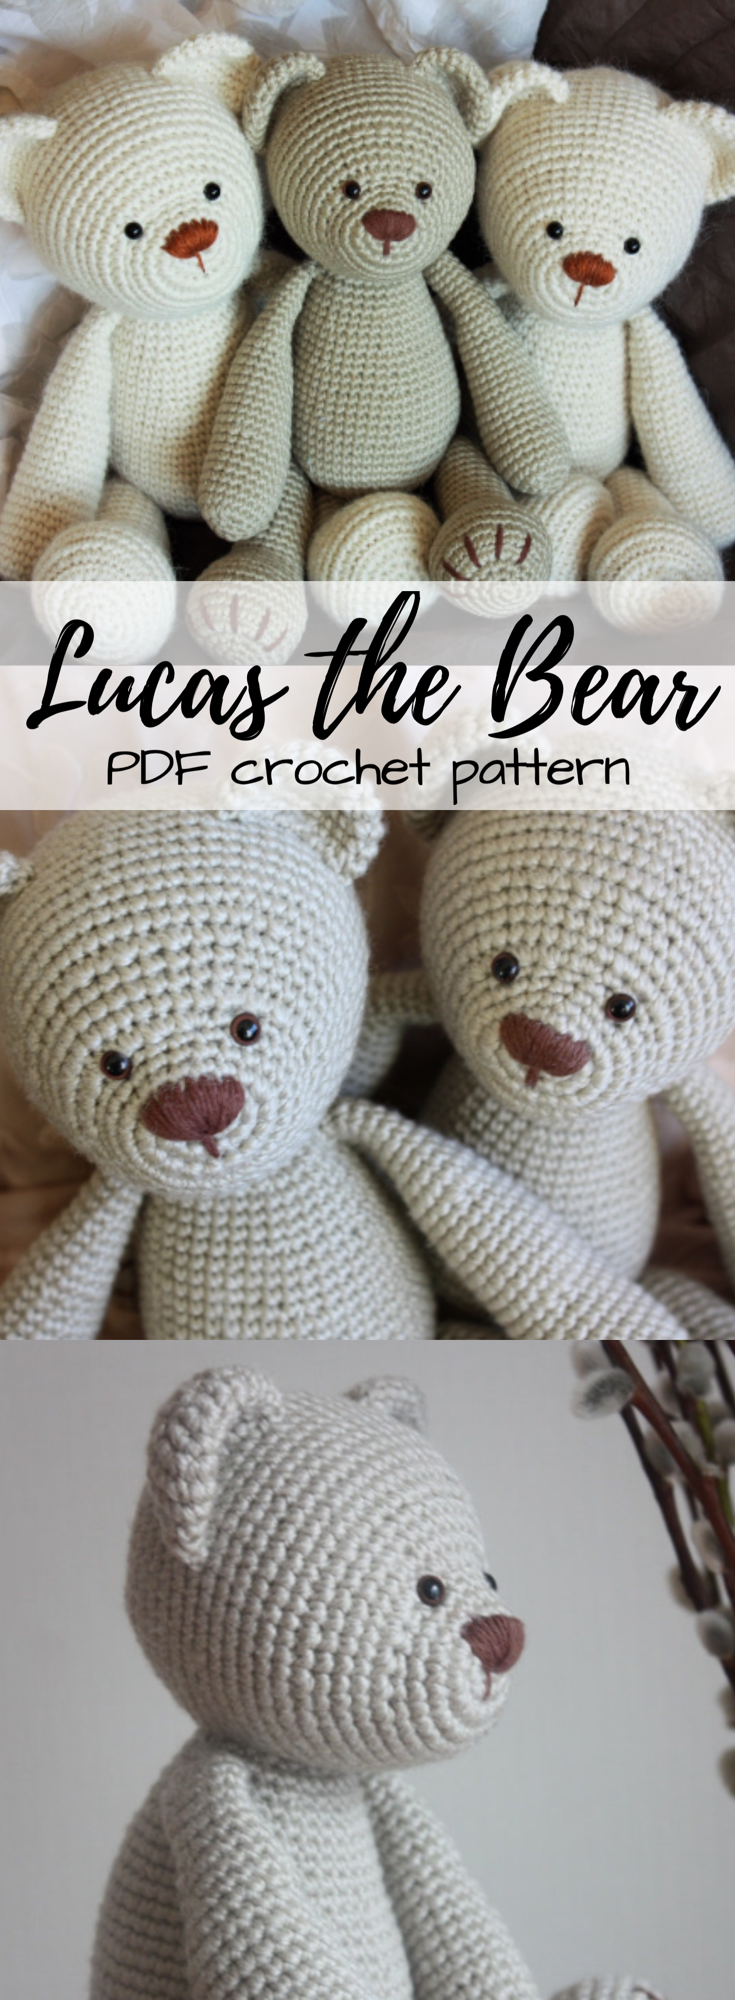 Lucas The Bear Pdf Crochet Pattern Cute Amigurumi Toy To